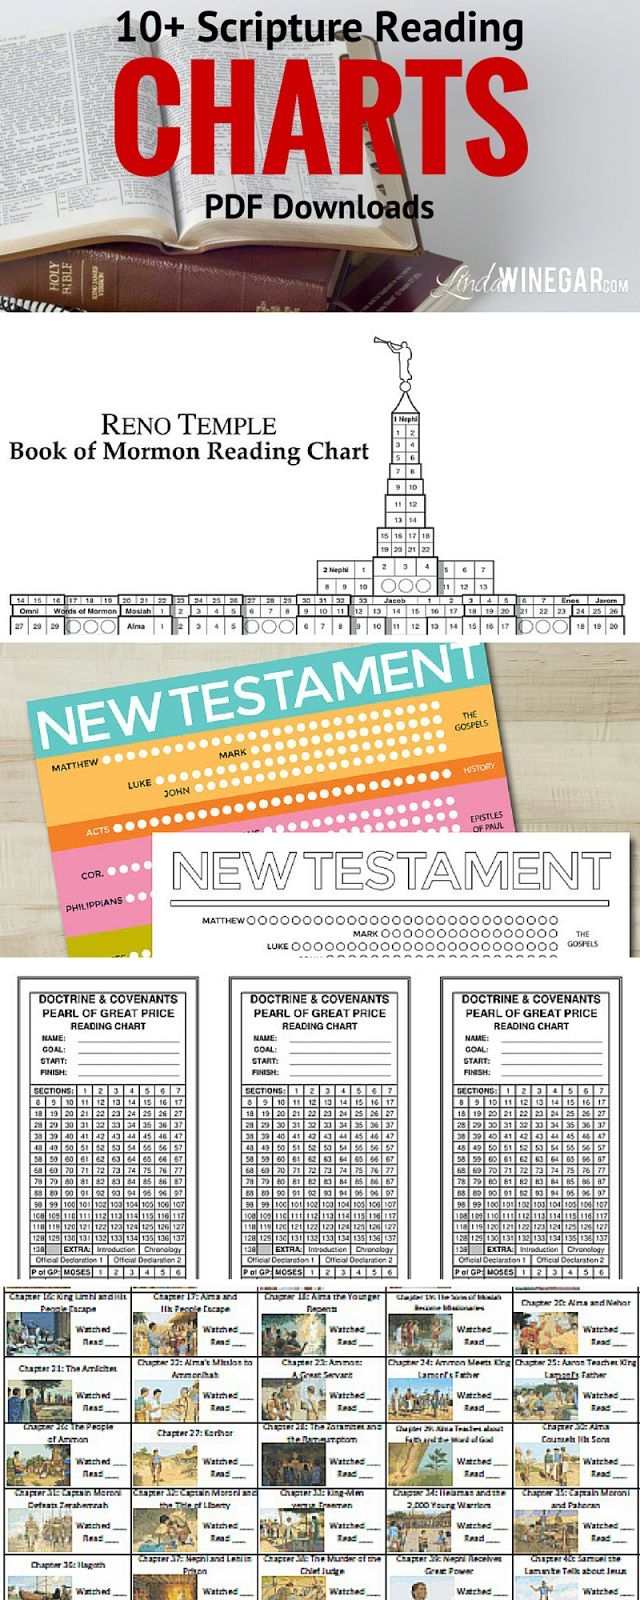 10+ Scripture Reading Charts | scripture reading charts for The Book of Mormon, The Holy Bible both Old & New Testaments, the Pearl of Great Price and the Doctrine & Covenants. | LindaWinegar.com #ScriptureReading #LDS #LDSconf